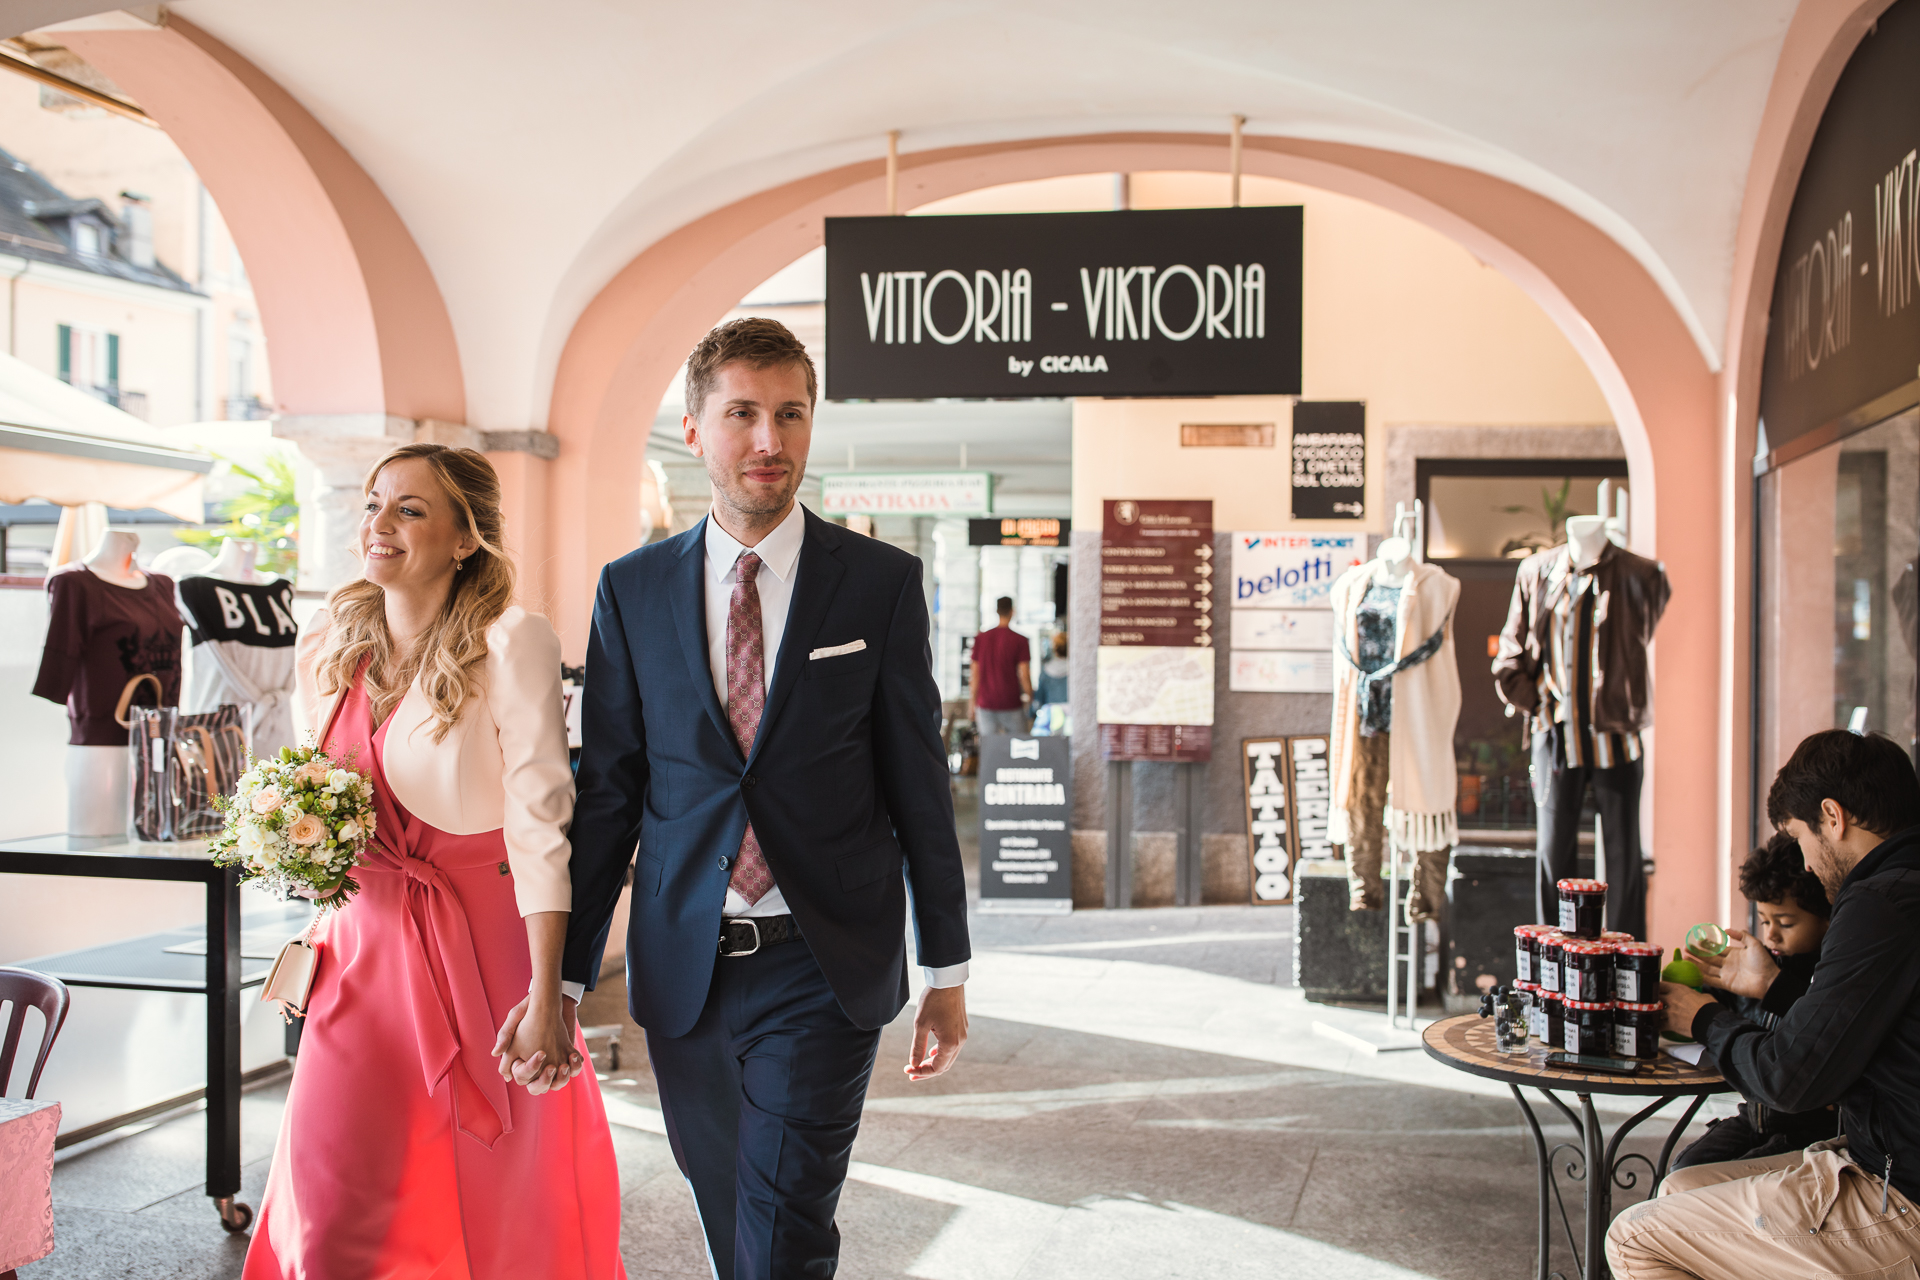 Locarno City Hall, Switzerland Elopement Photography | the bride and groom stroll hand in hand past shop displays in Locarno